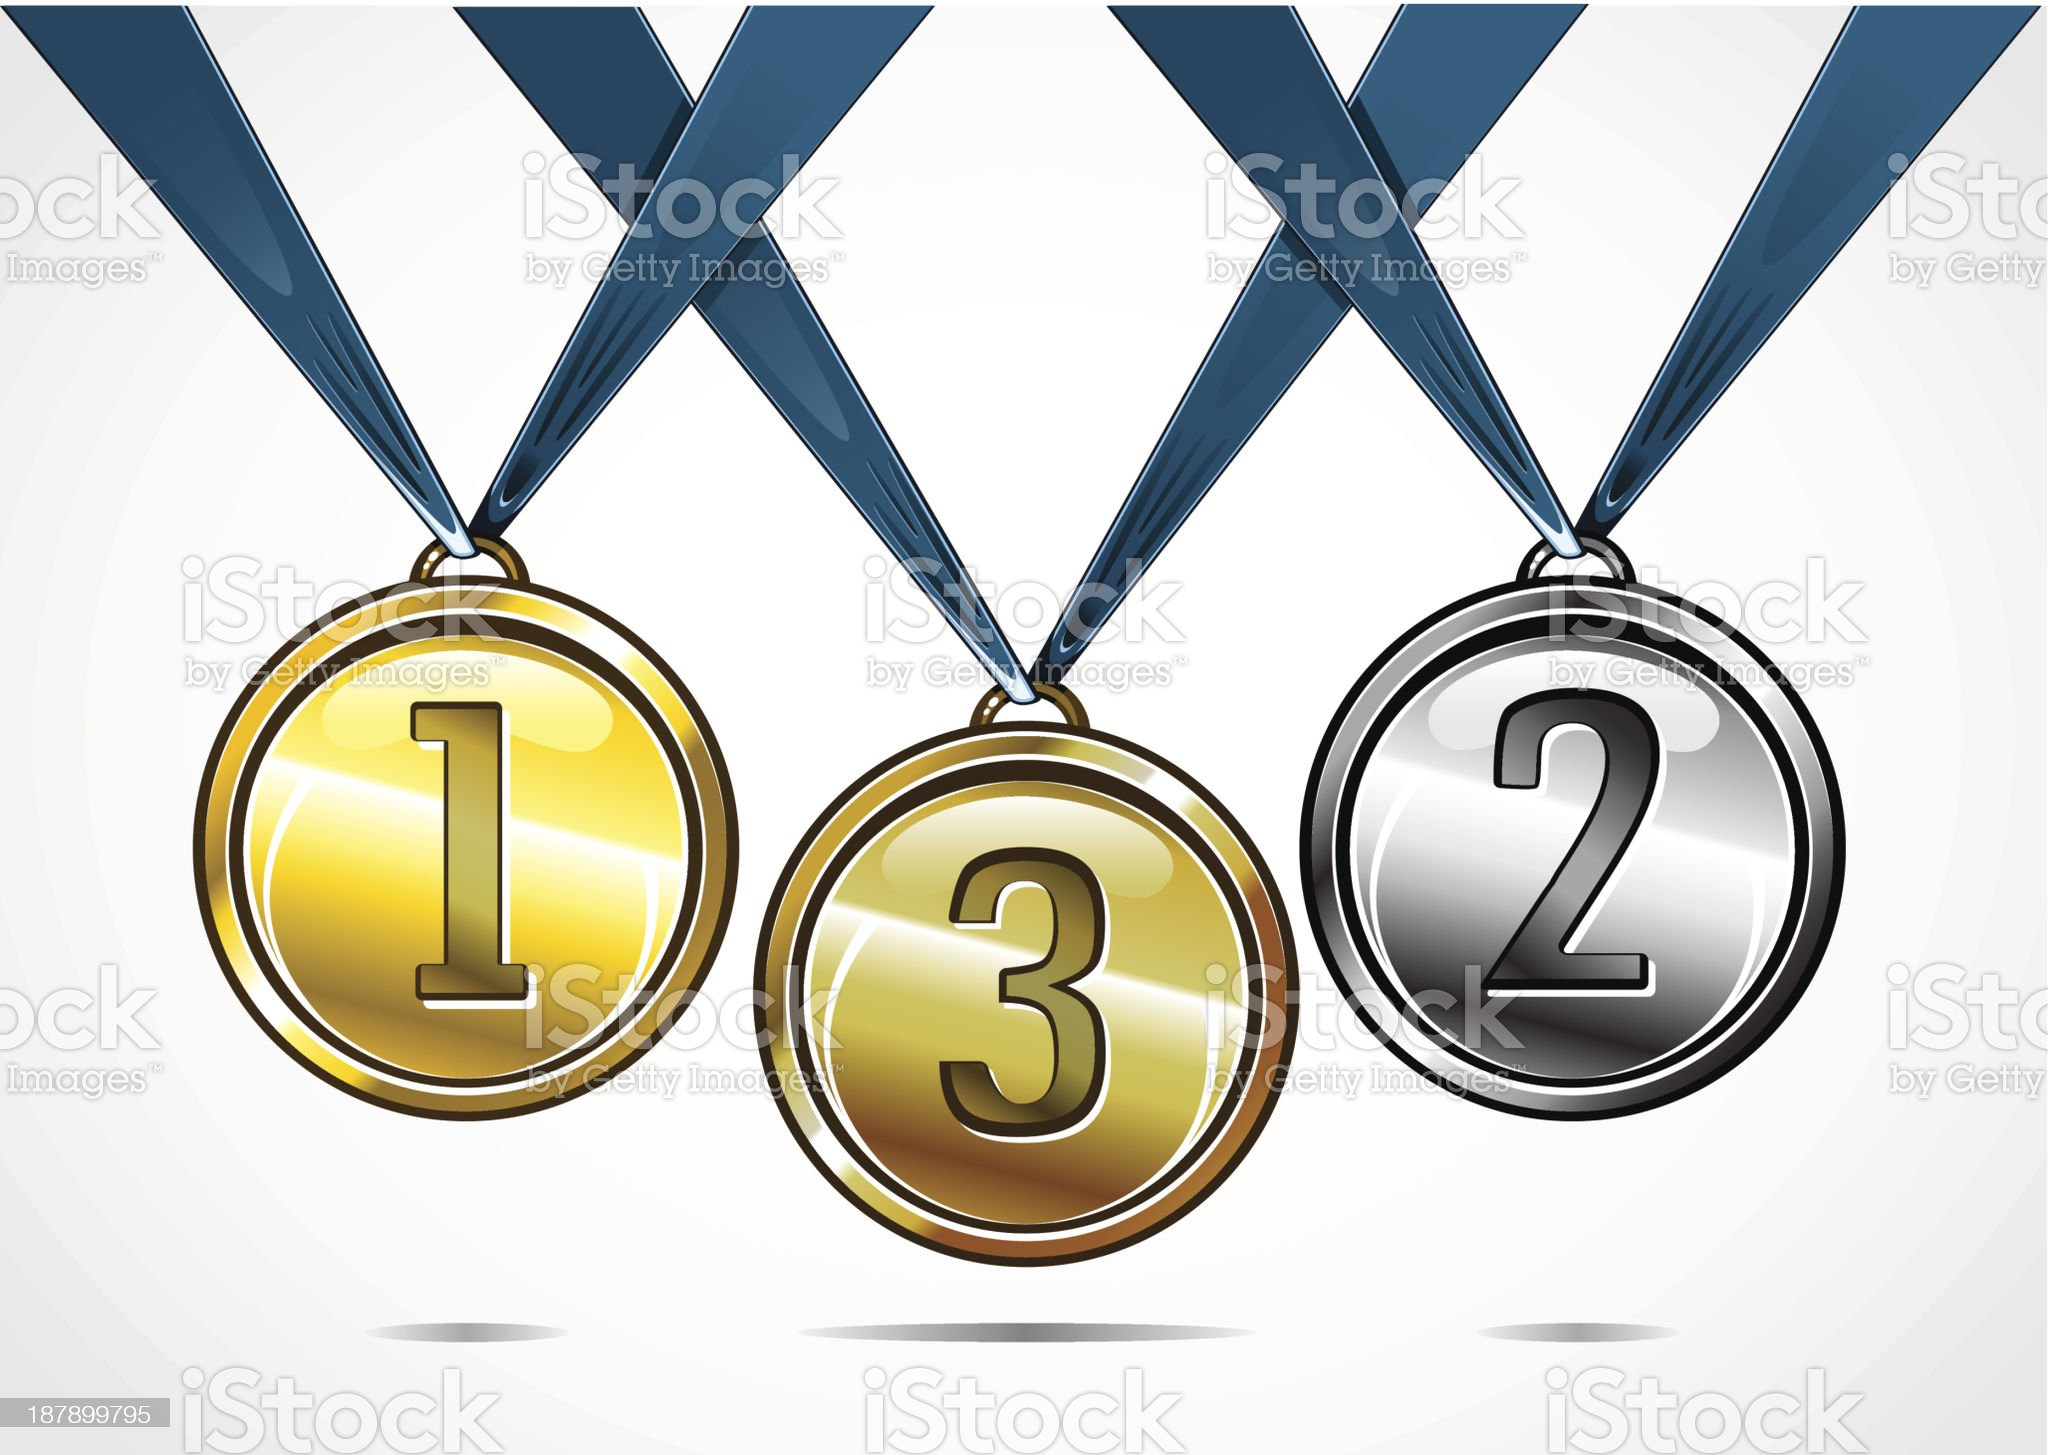 Three medals royalty-free stock vector art